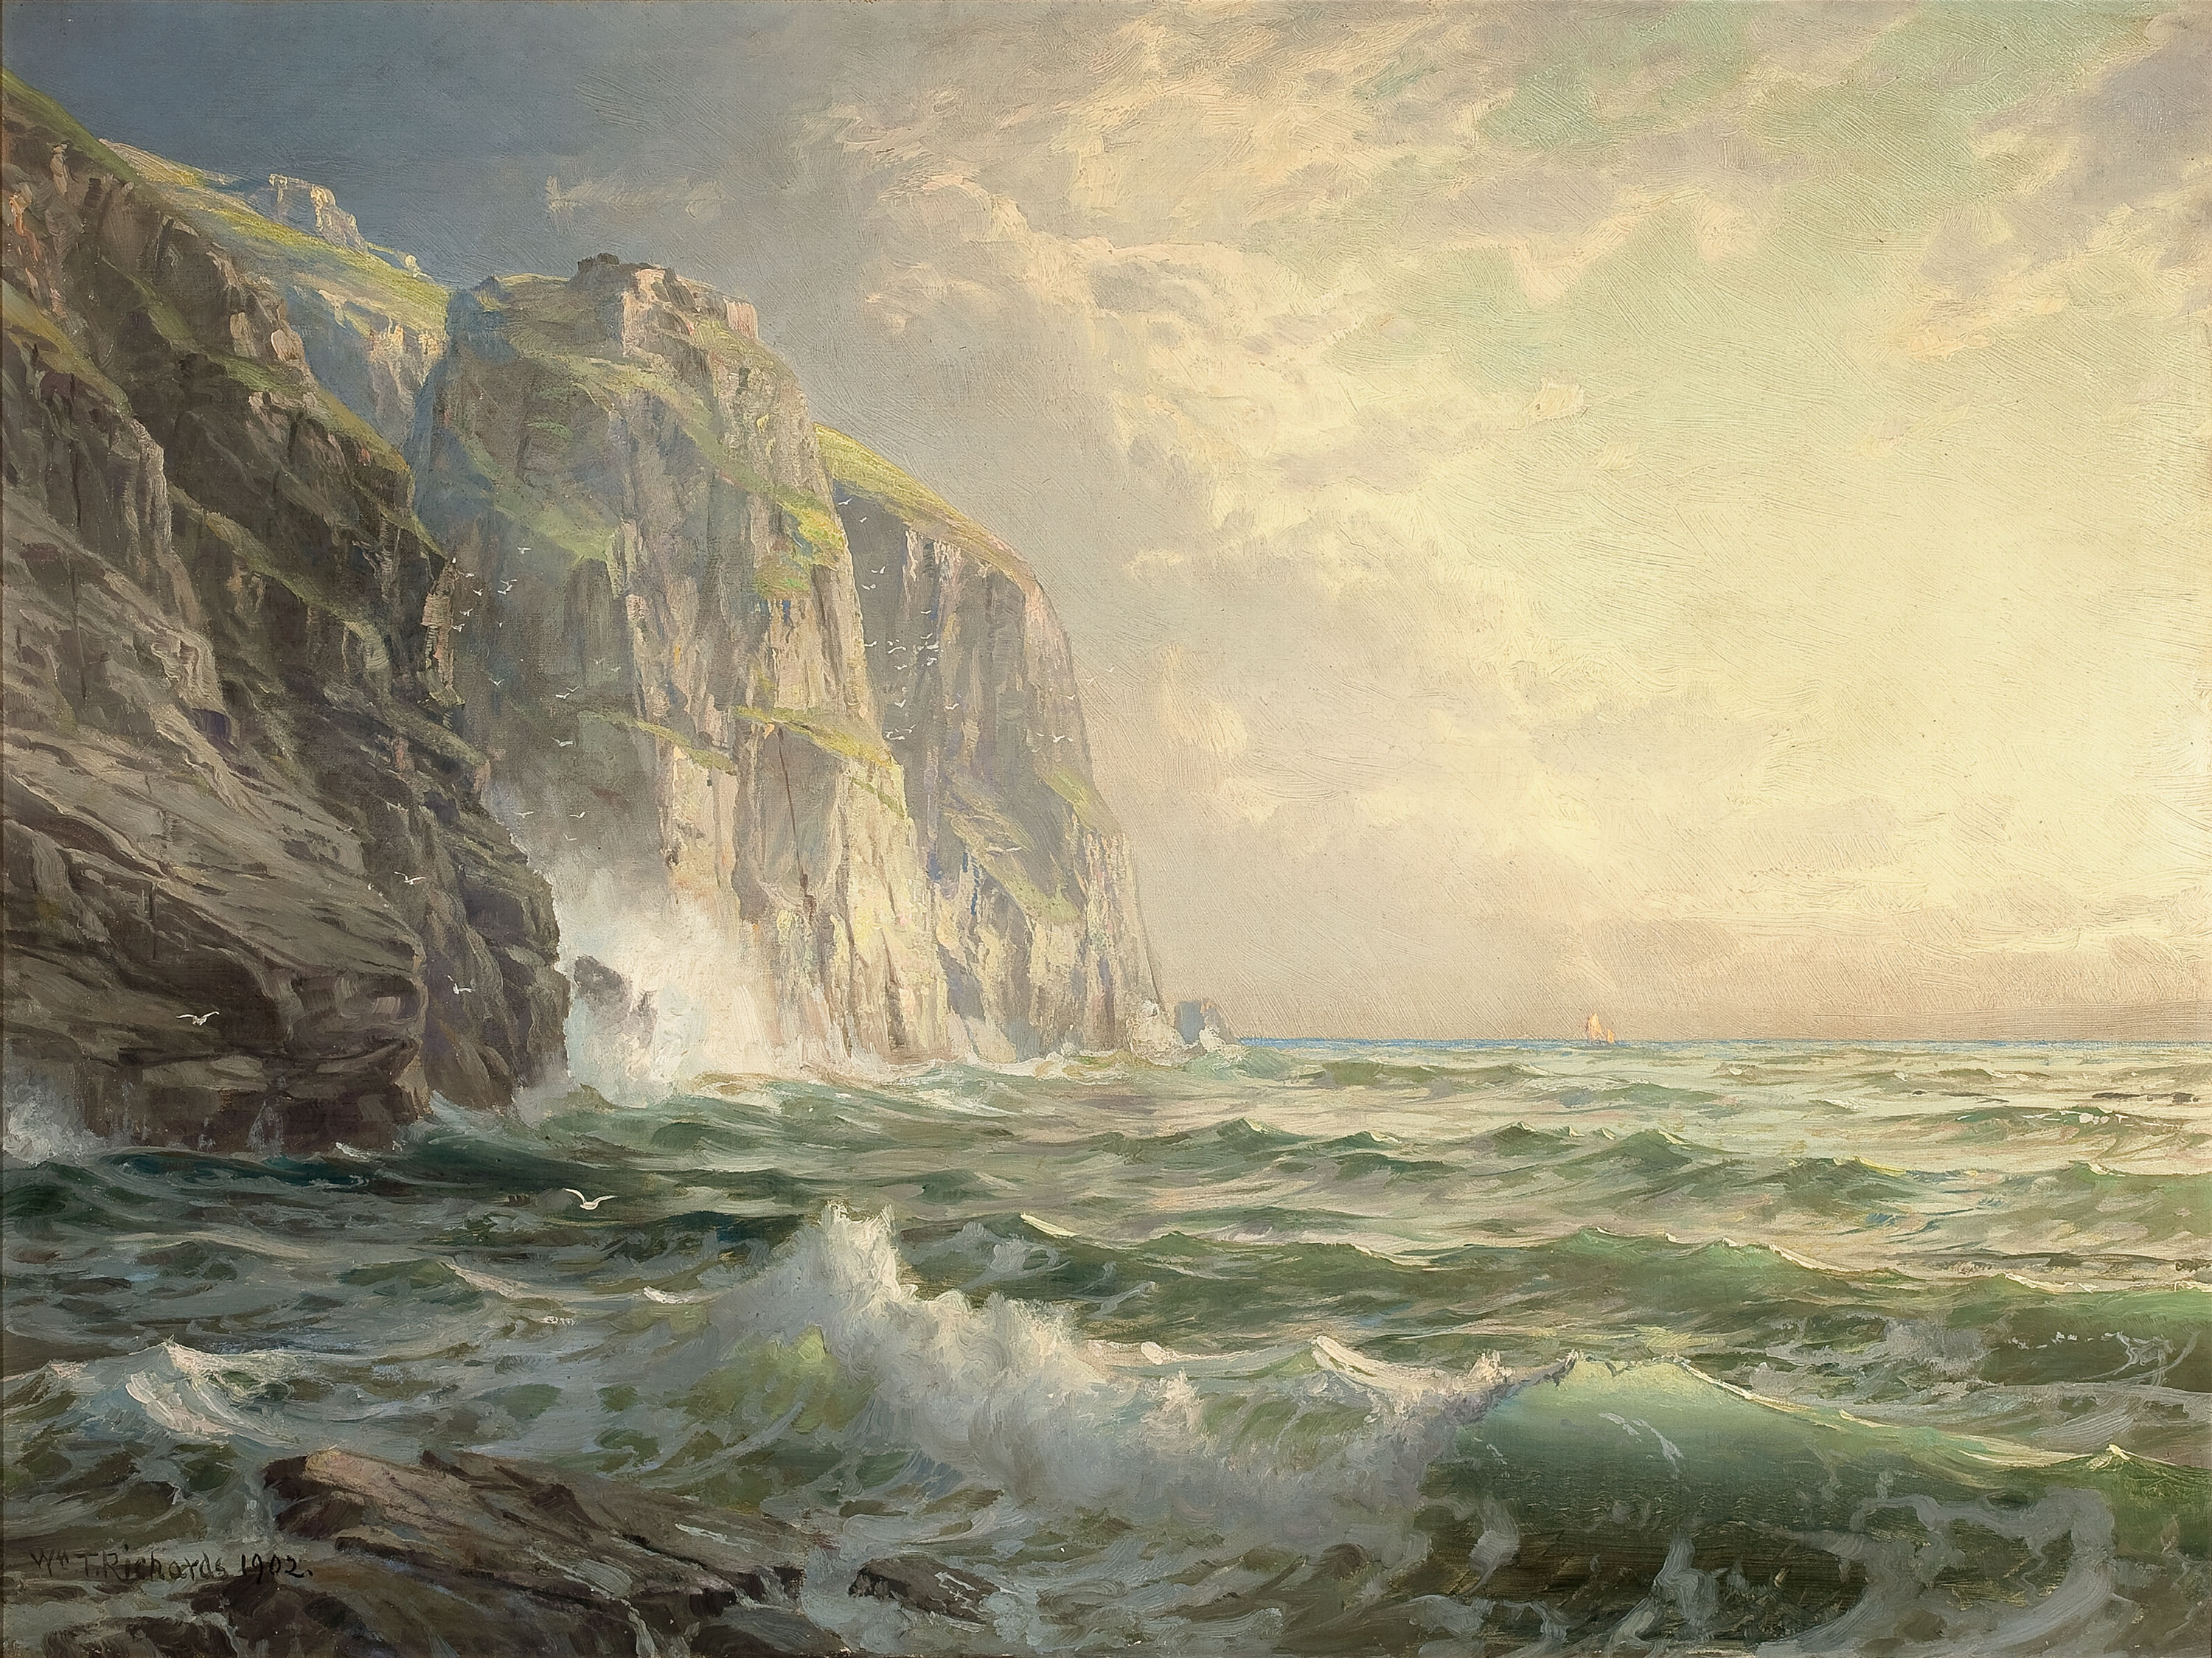 Rocky_Cliff_with_Stormy_Sea_Cornwall-William_Trost_Richards-1902